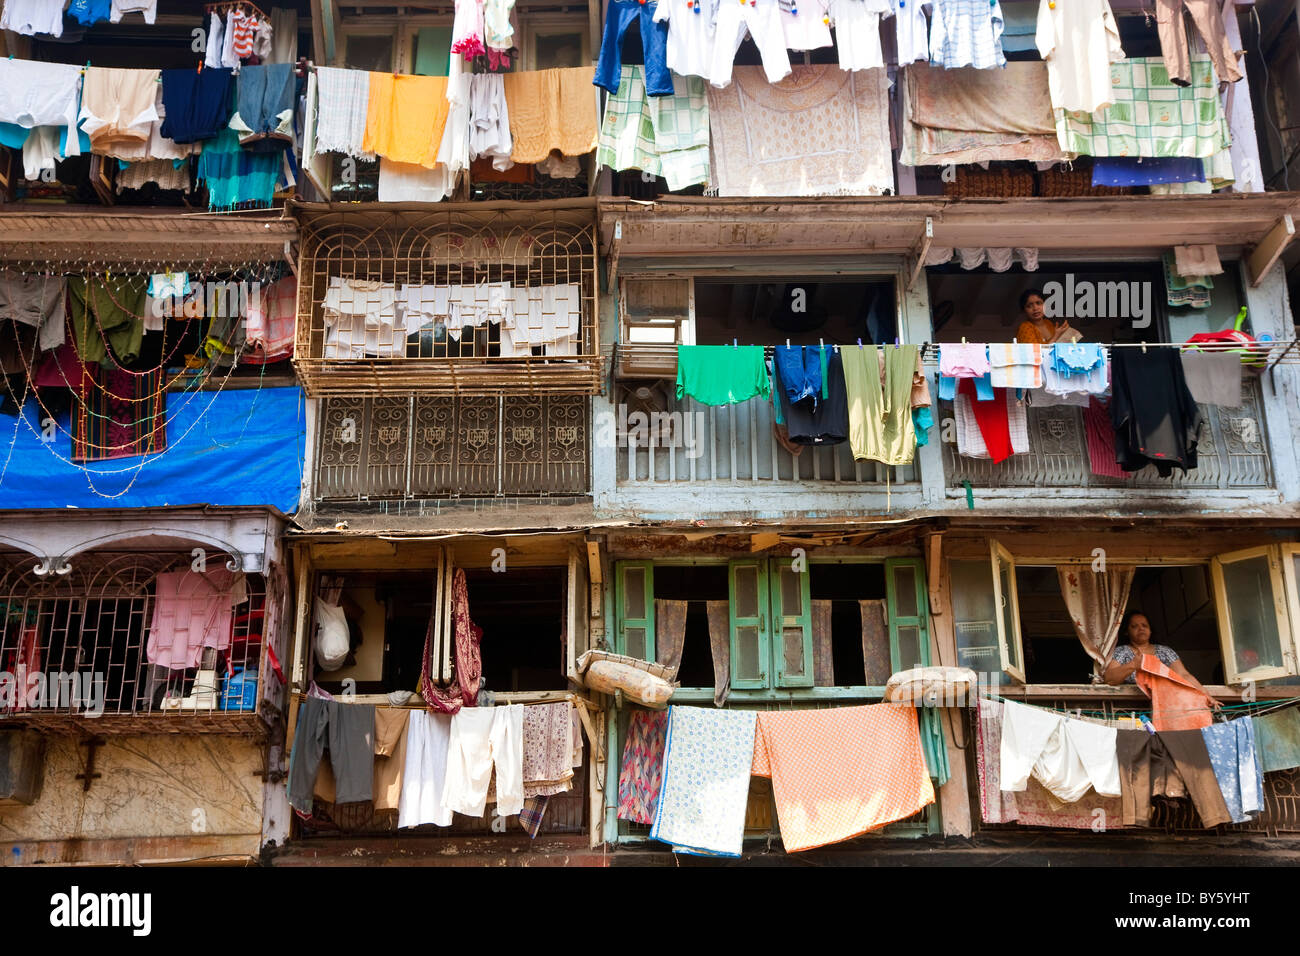 Washing drying outside flats, Mumbai (Bombay), India - Stock Image